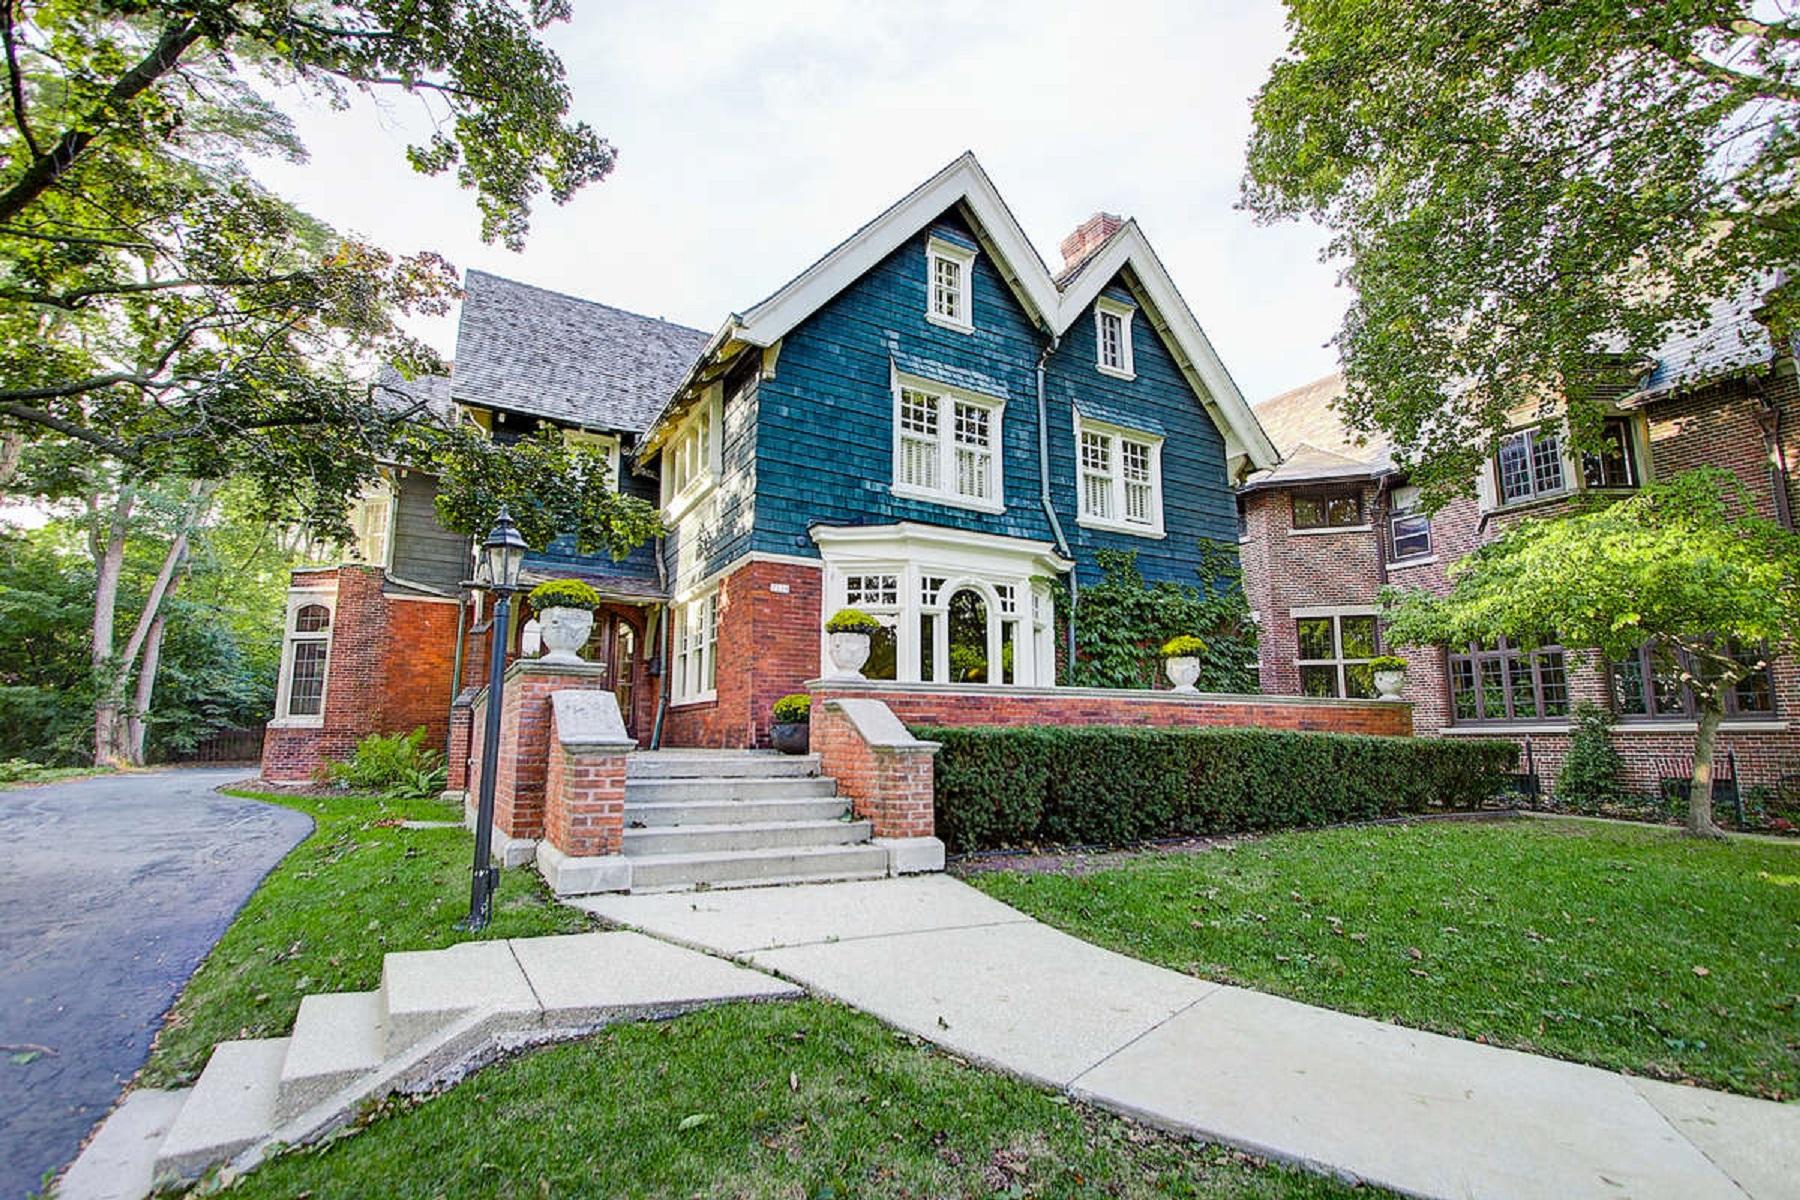 Single Family Home for Sale at Spectacular updates in a classic setting 2239 N. Terrace Avenue Milwaukee, Wisconsin 53202 United States